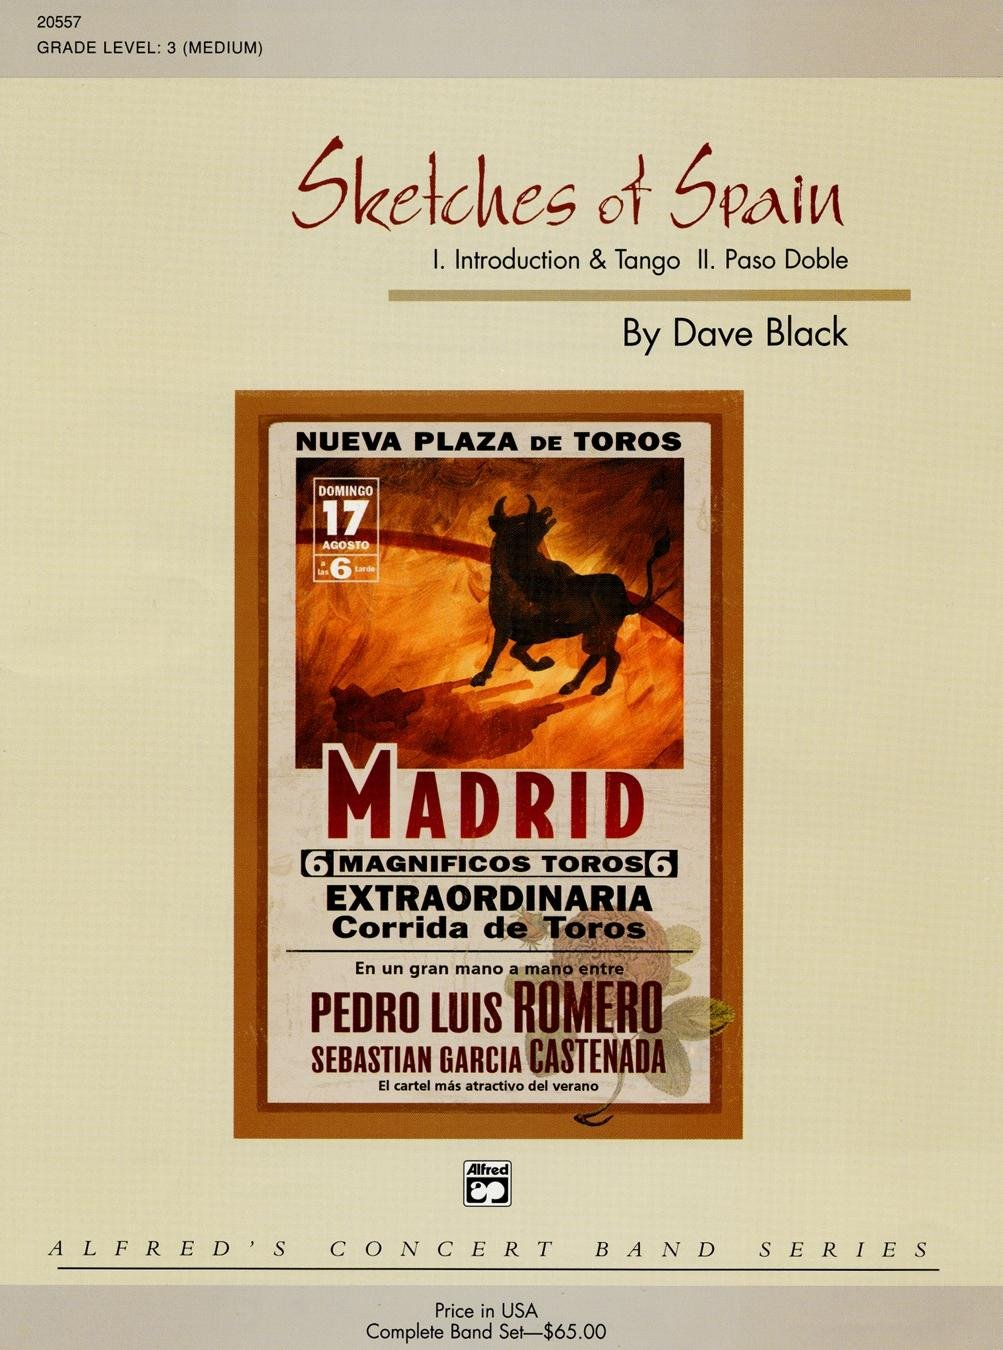 Sketches of Spain Conductor Score & Parts: 0038081196510 ...